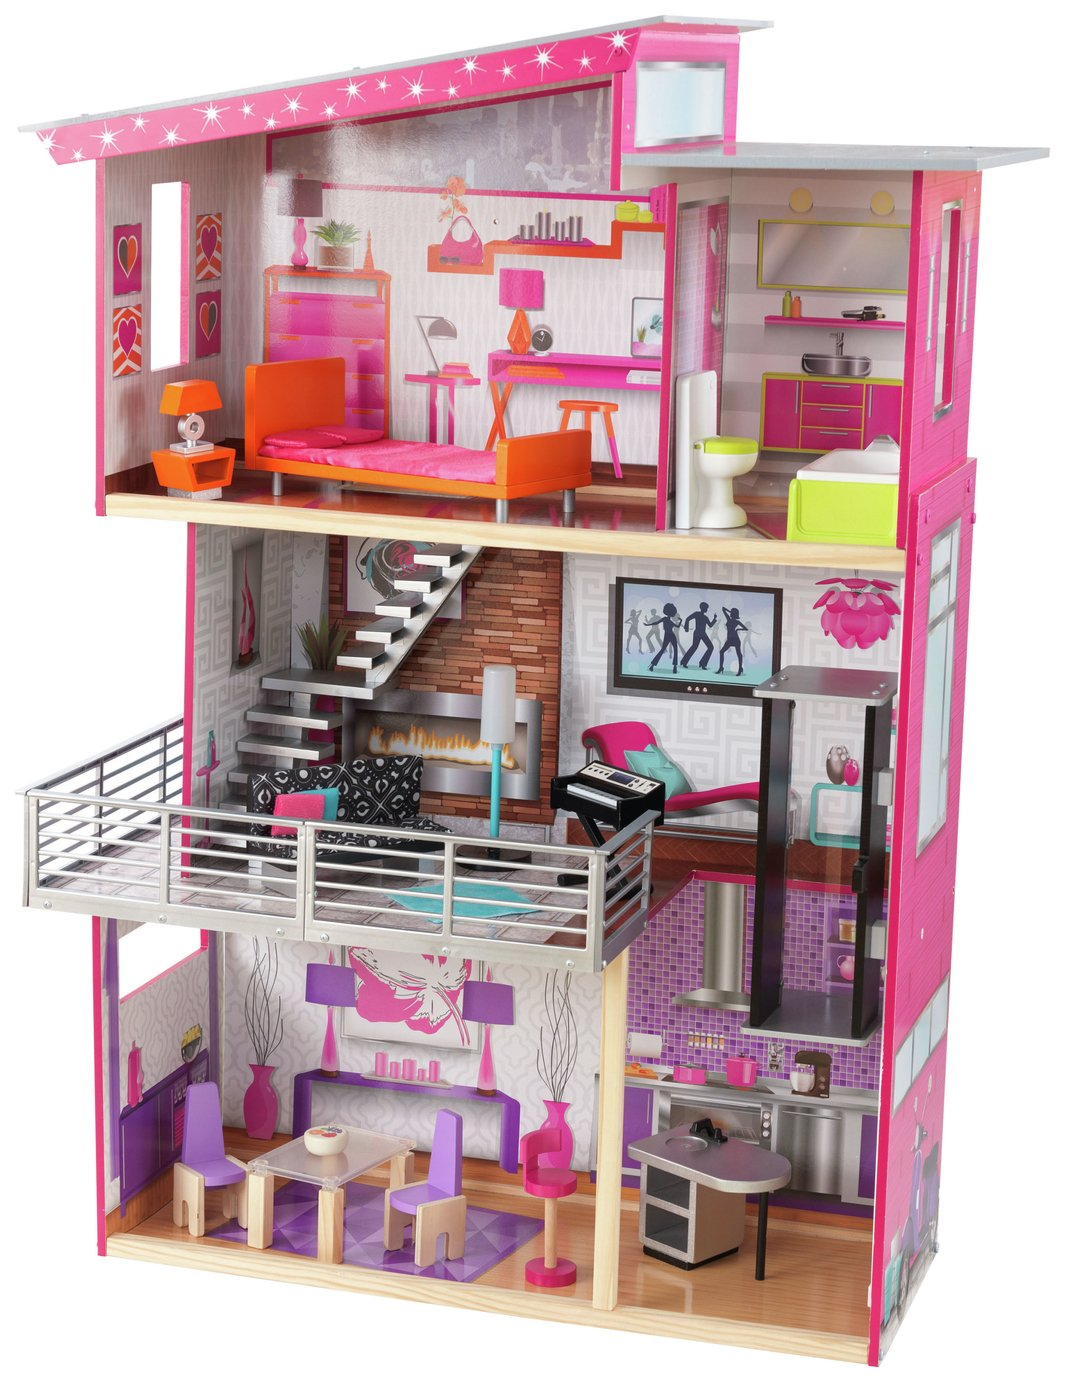 Dolls house at argos co uk your online shop for dolls houses dolls - Luxury Dolls House